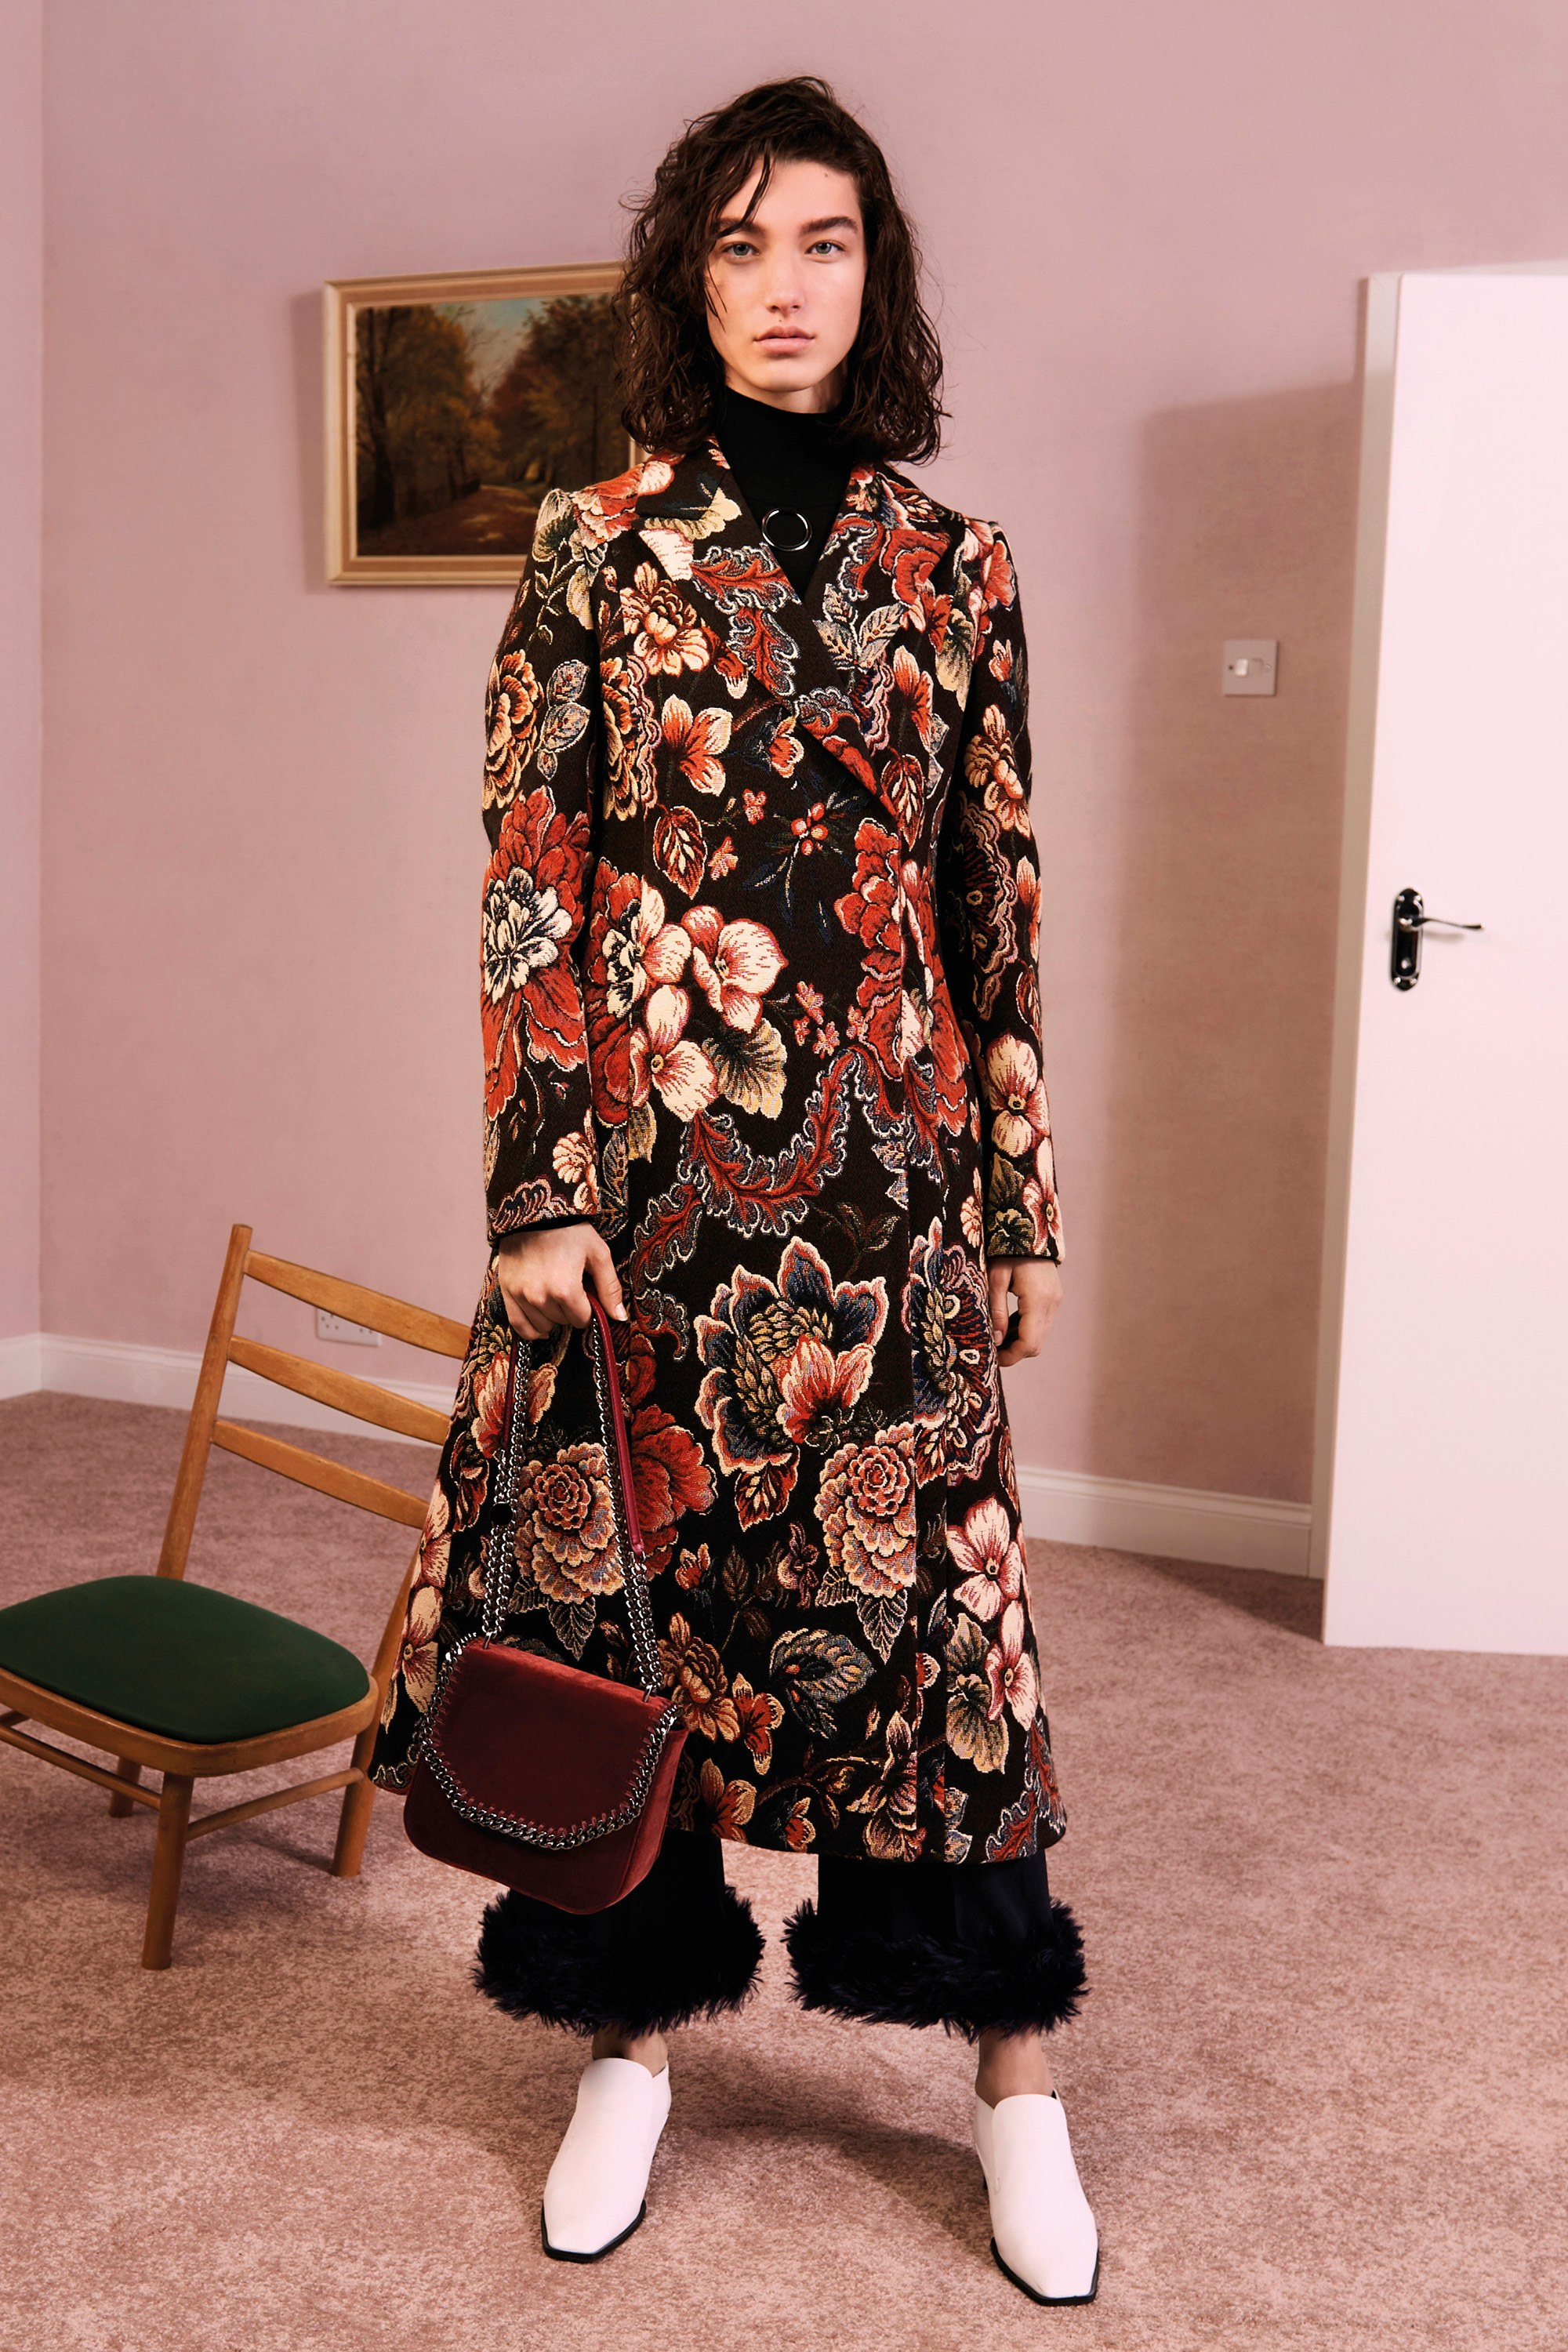 15-stella-mccartney-pre-fall-2017.jpg